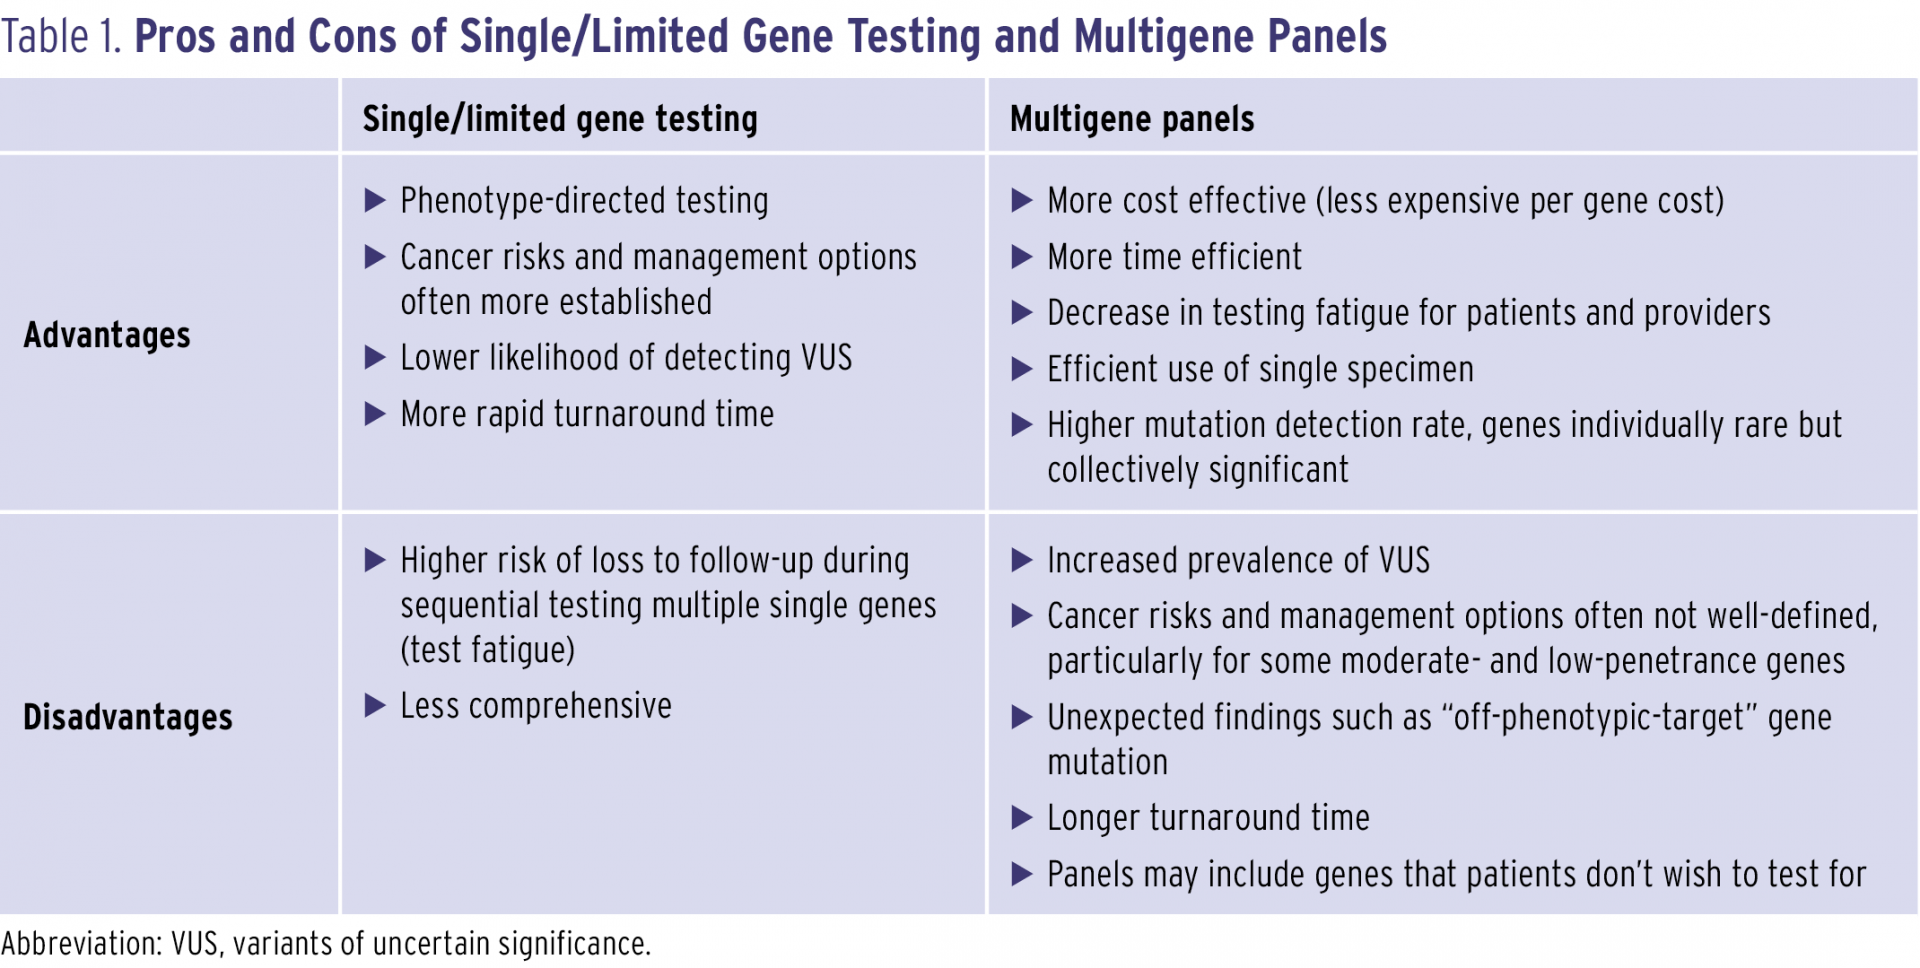 genetic testing and screening essay The definition of right and wrong in today's society is extremely vague the introduction of genetic testing and engineering has added to this blurred understanding of right ad wrong.